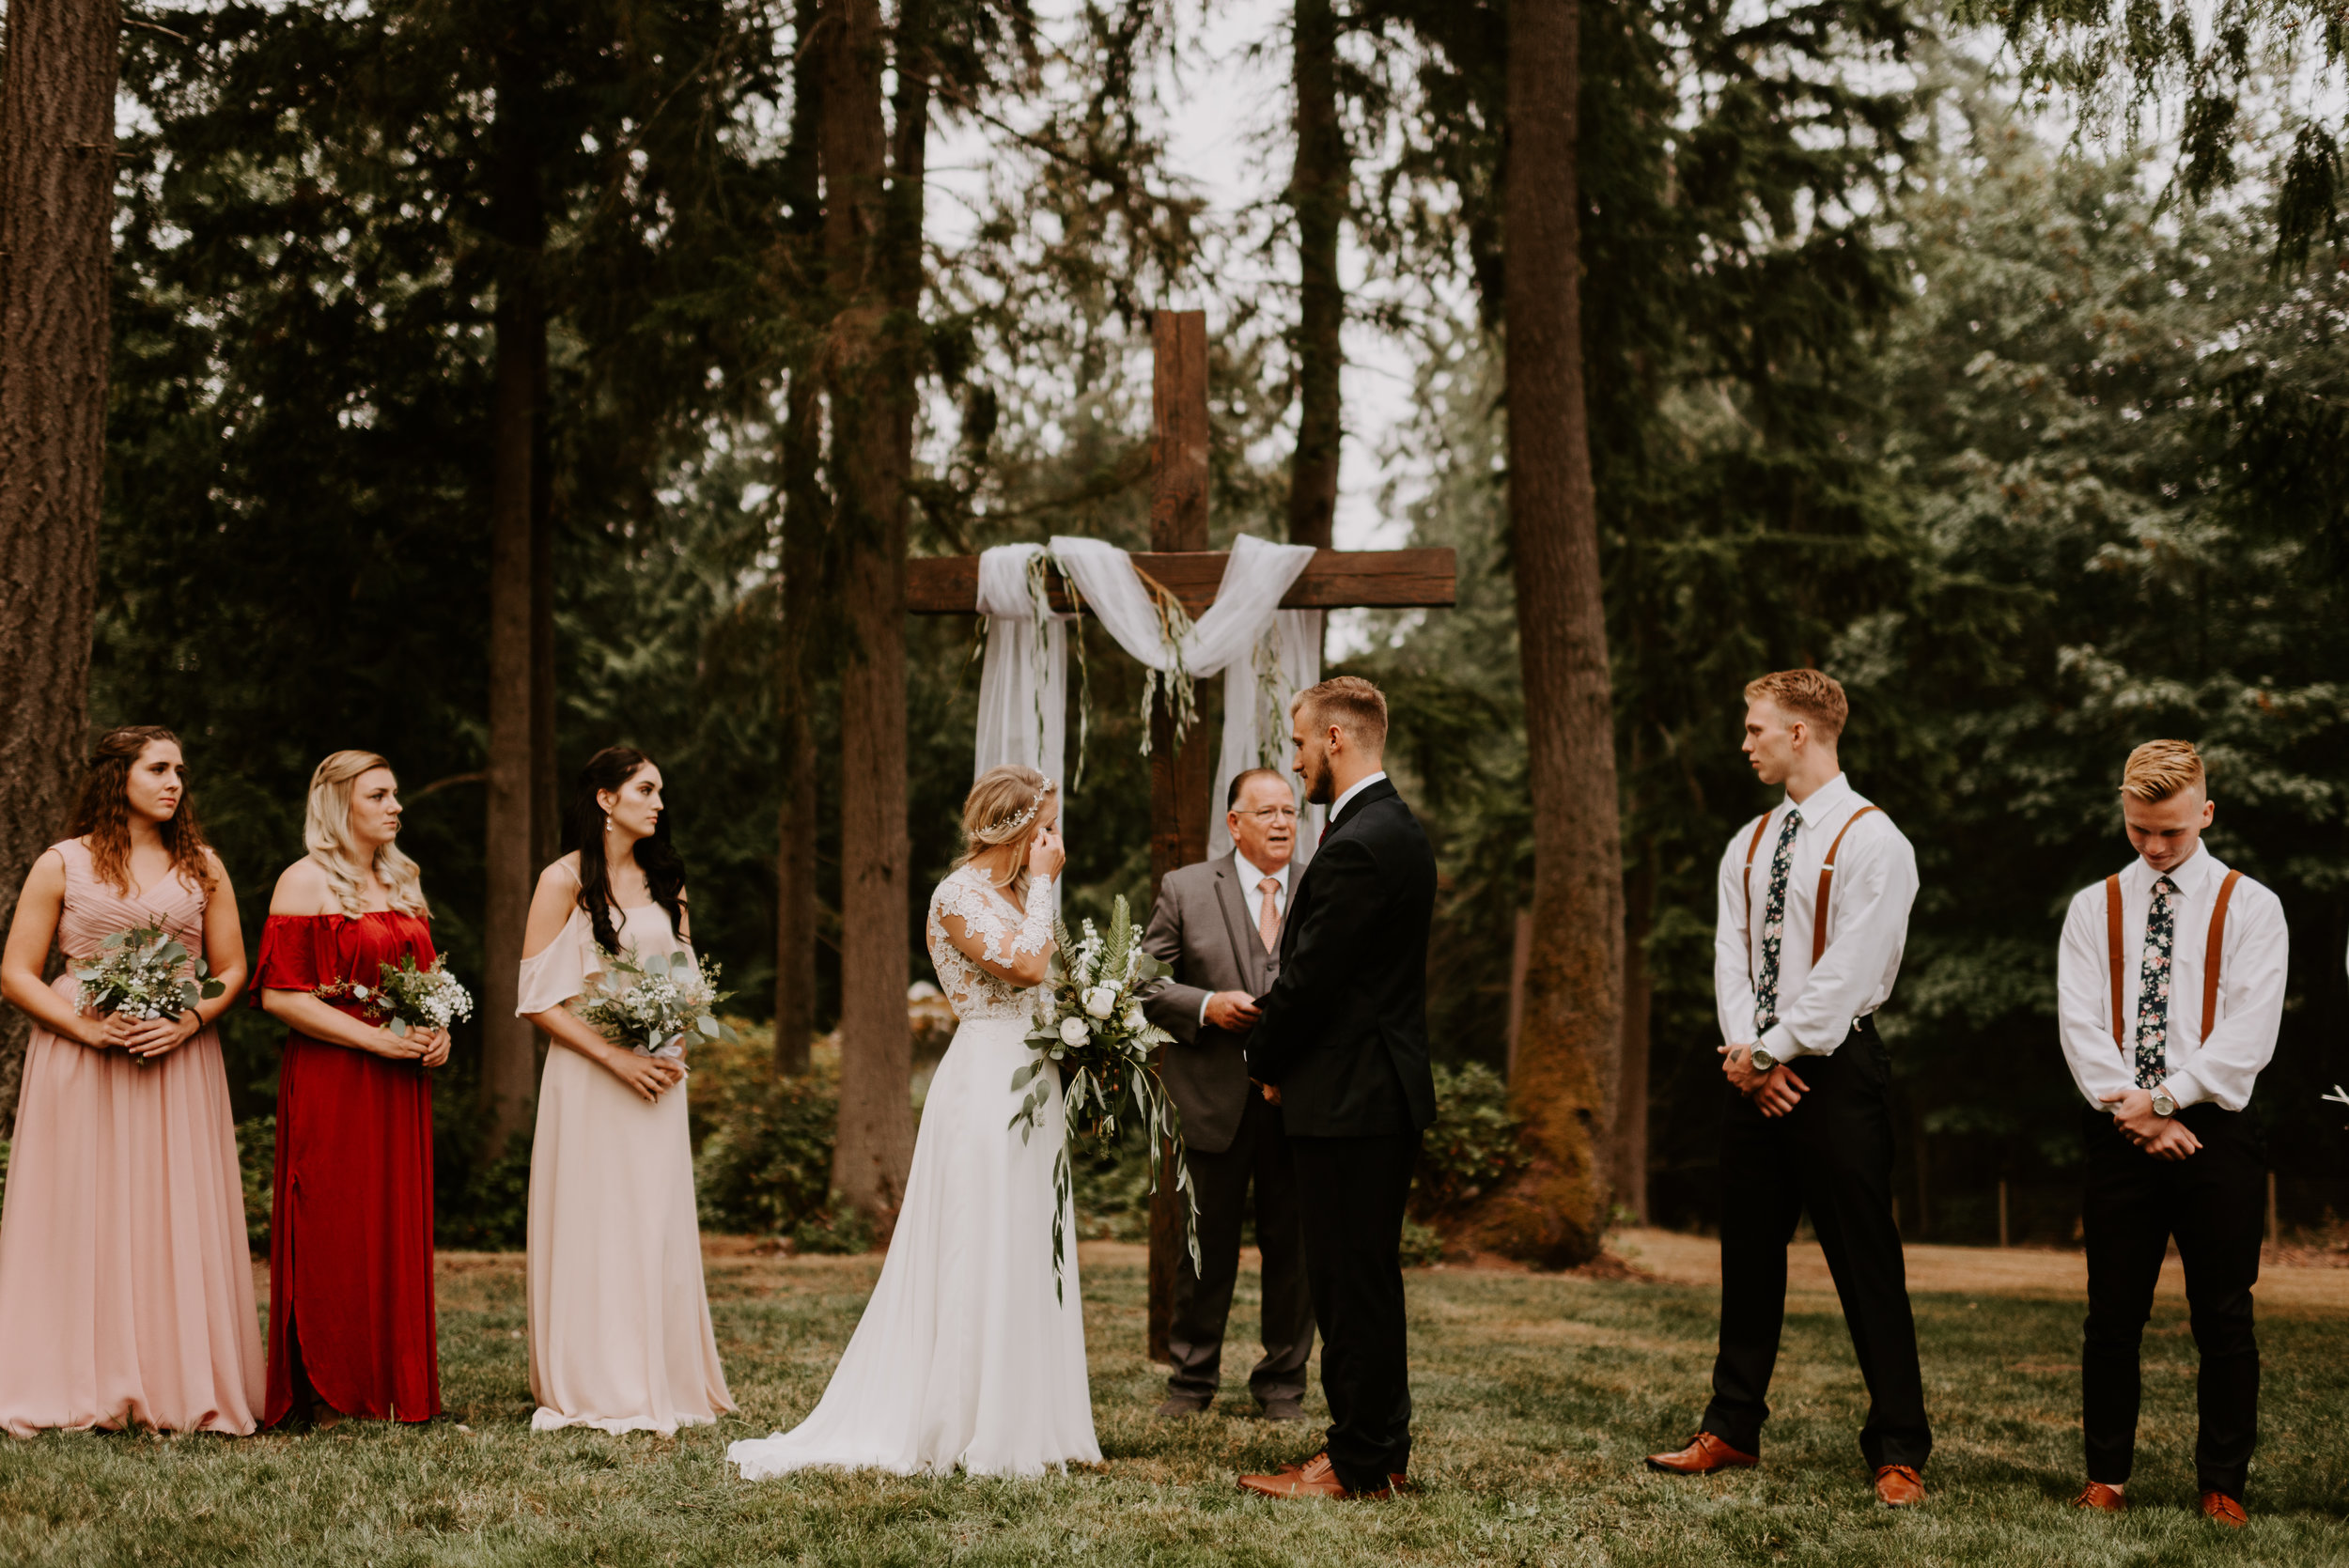 Cameo + Dawson Wedding - Ceremony Photos - Backyard Wedding in Olalla, Washington - Kamra Fuller Photography-141.JPG